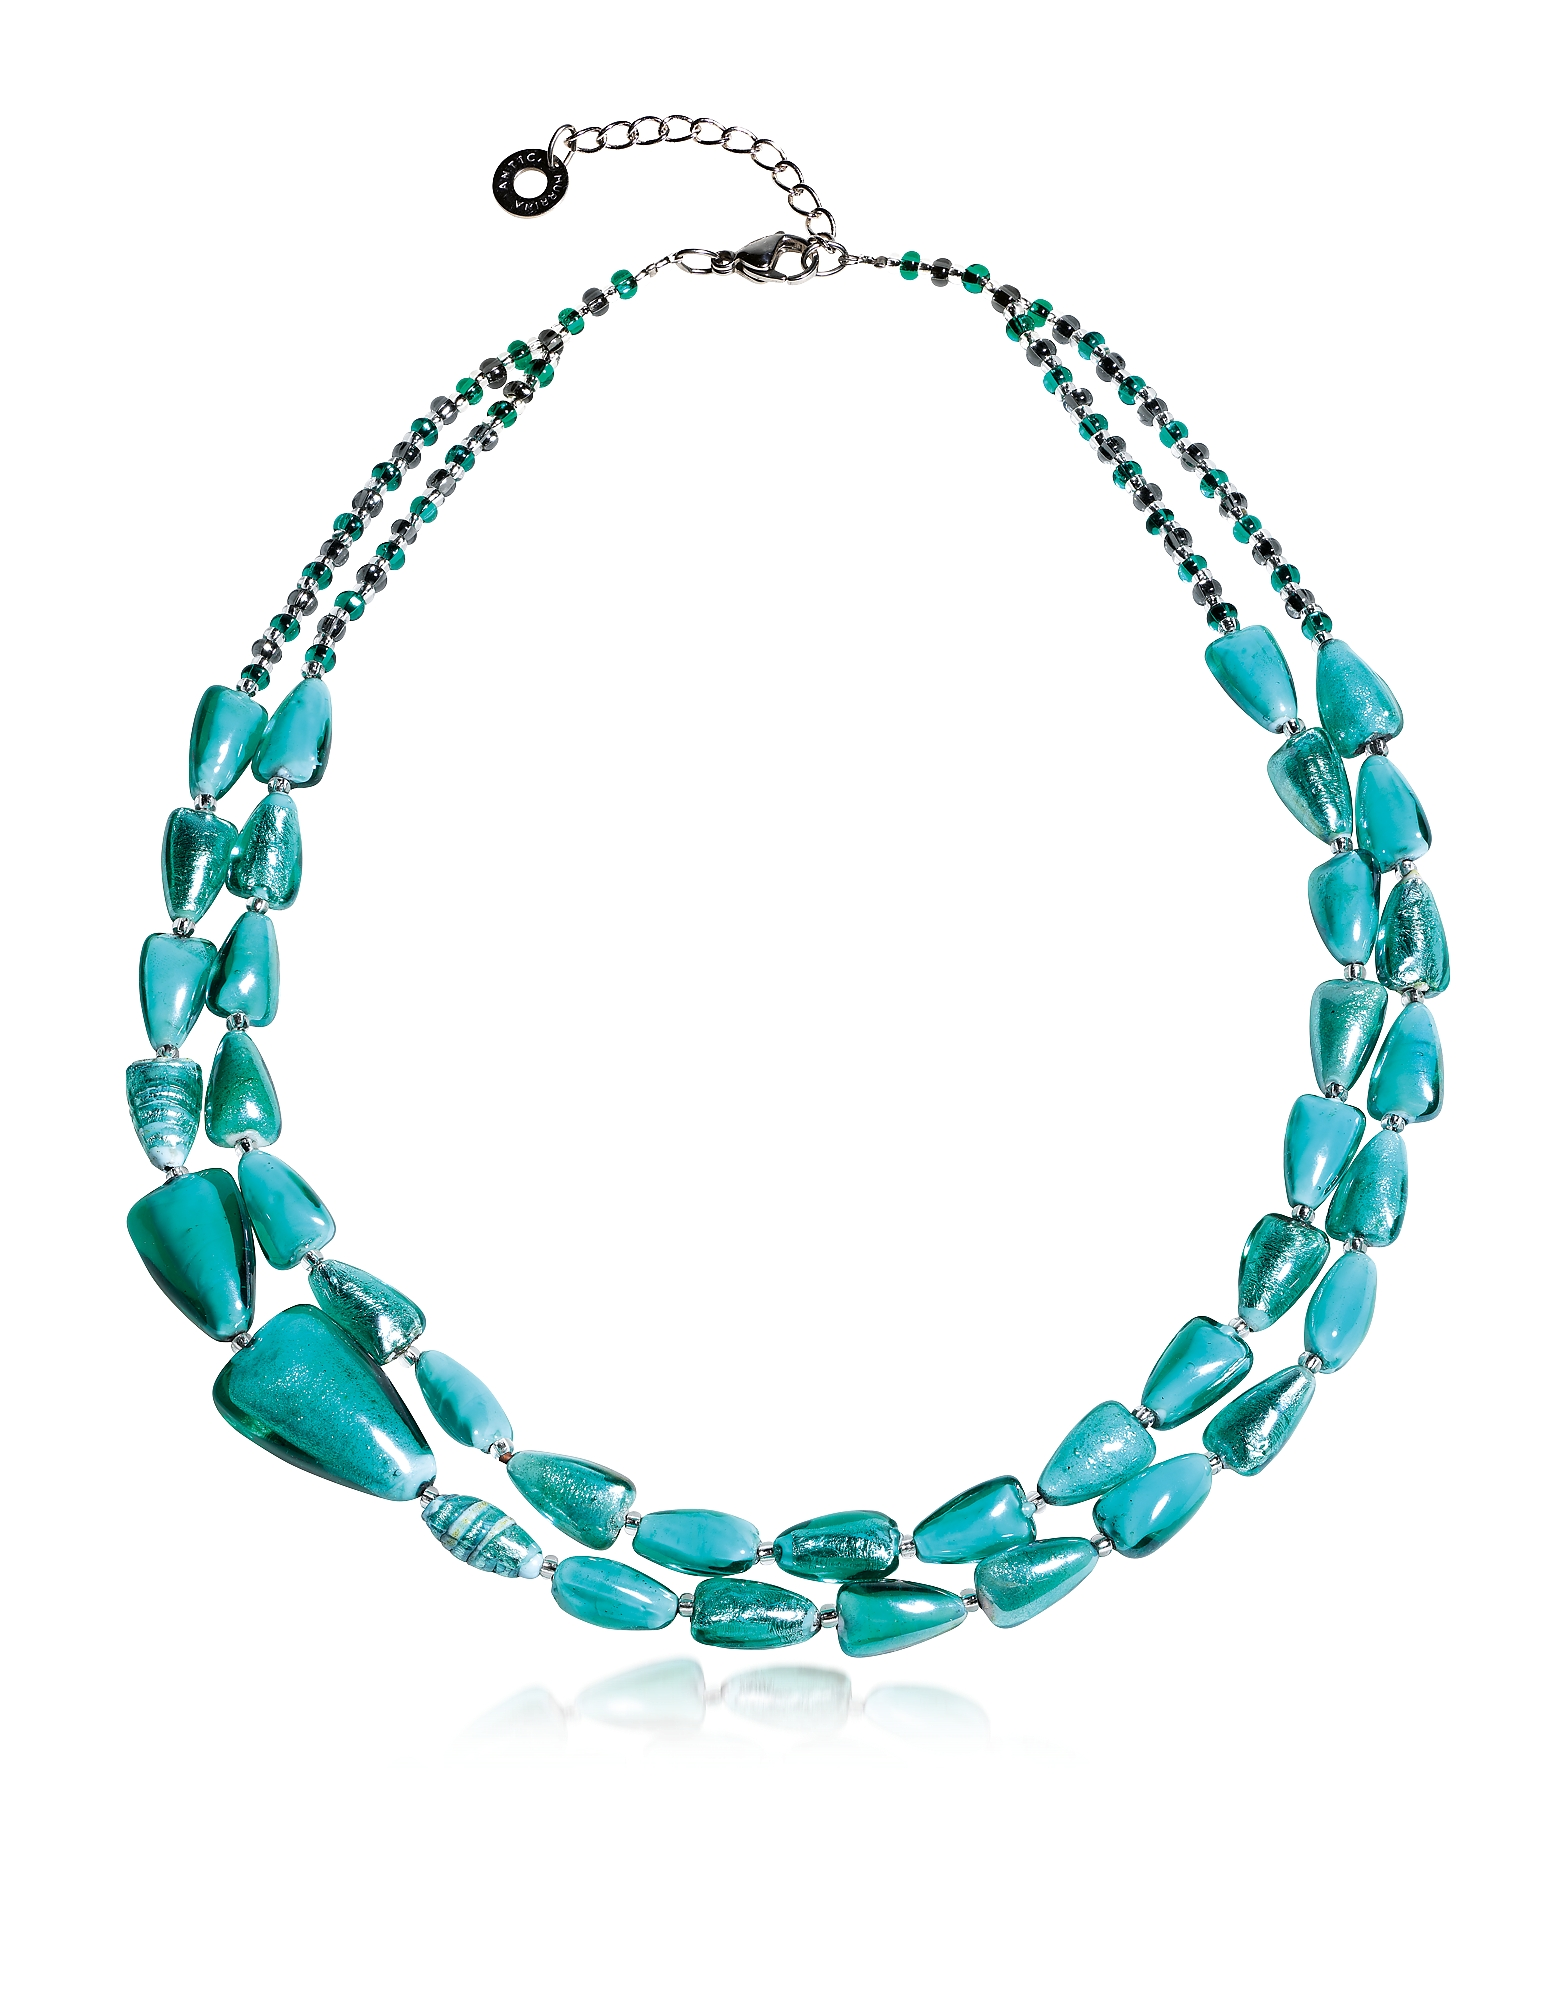 Antica Murrina Necklaces, Marina 1 Double - Turquoise Green Murano Glass and Silver Leaf Necklace